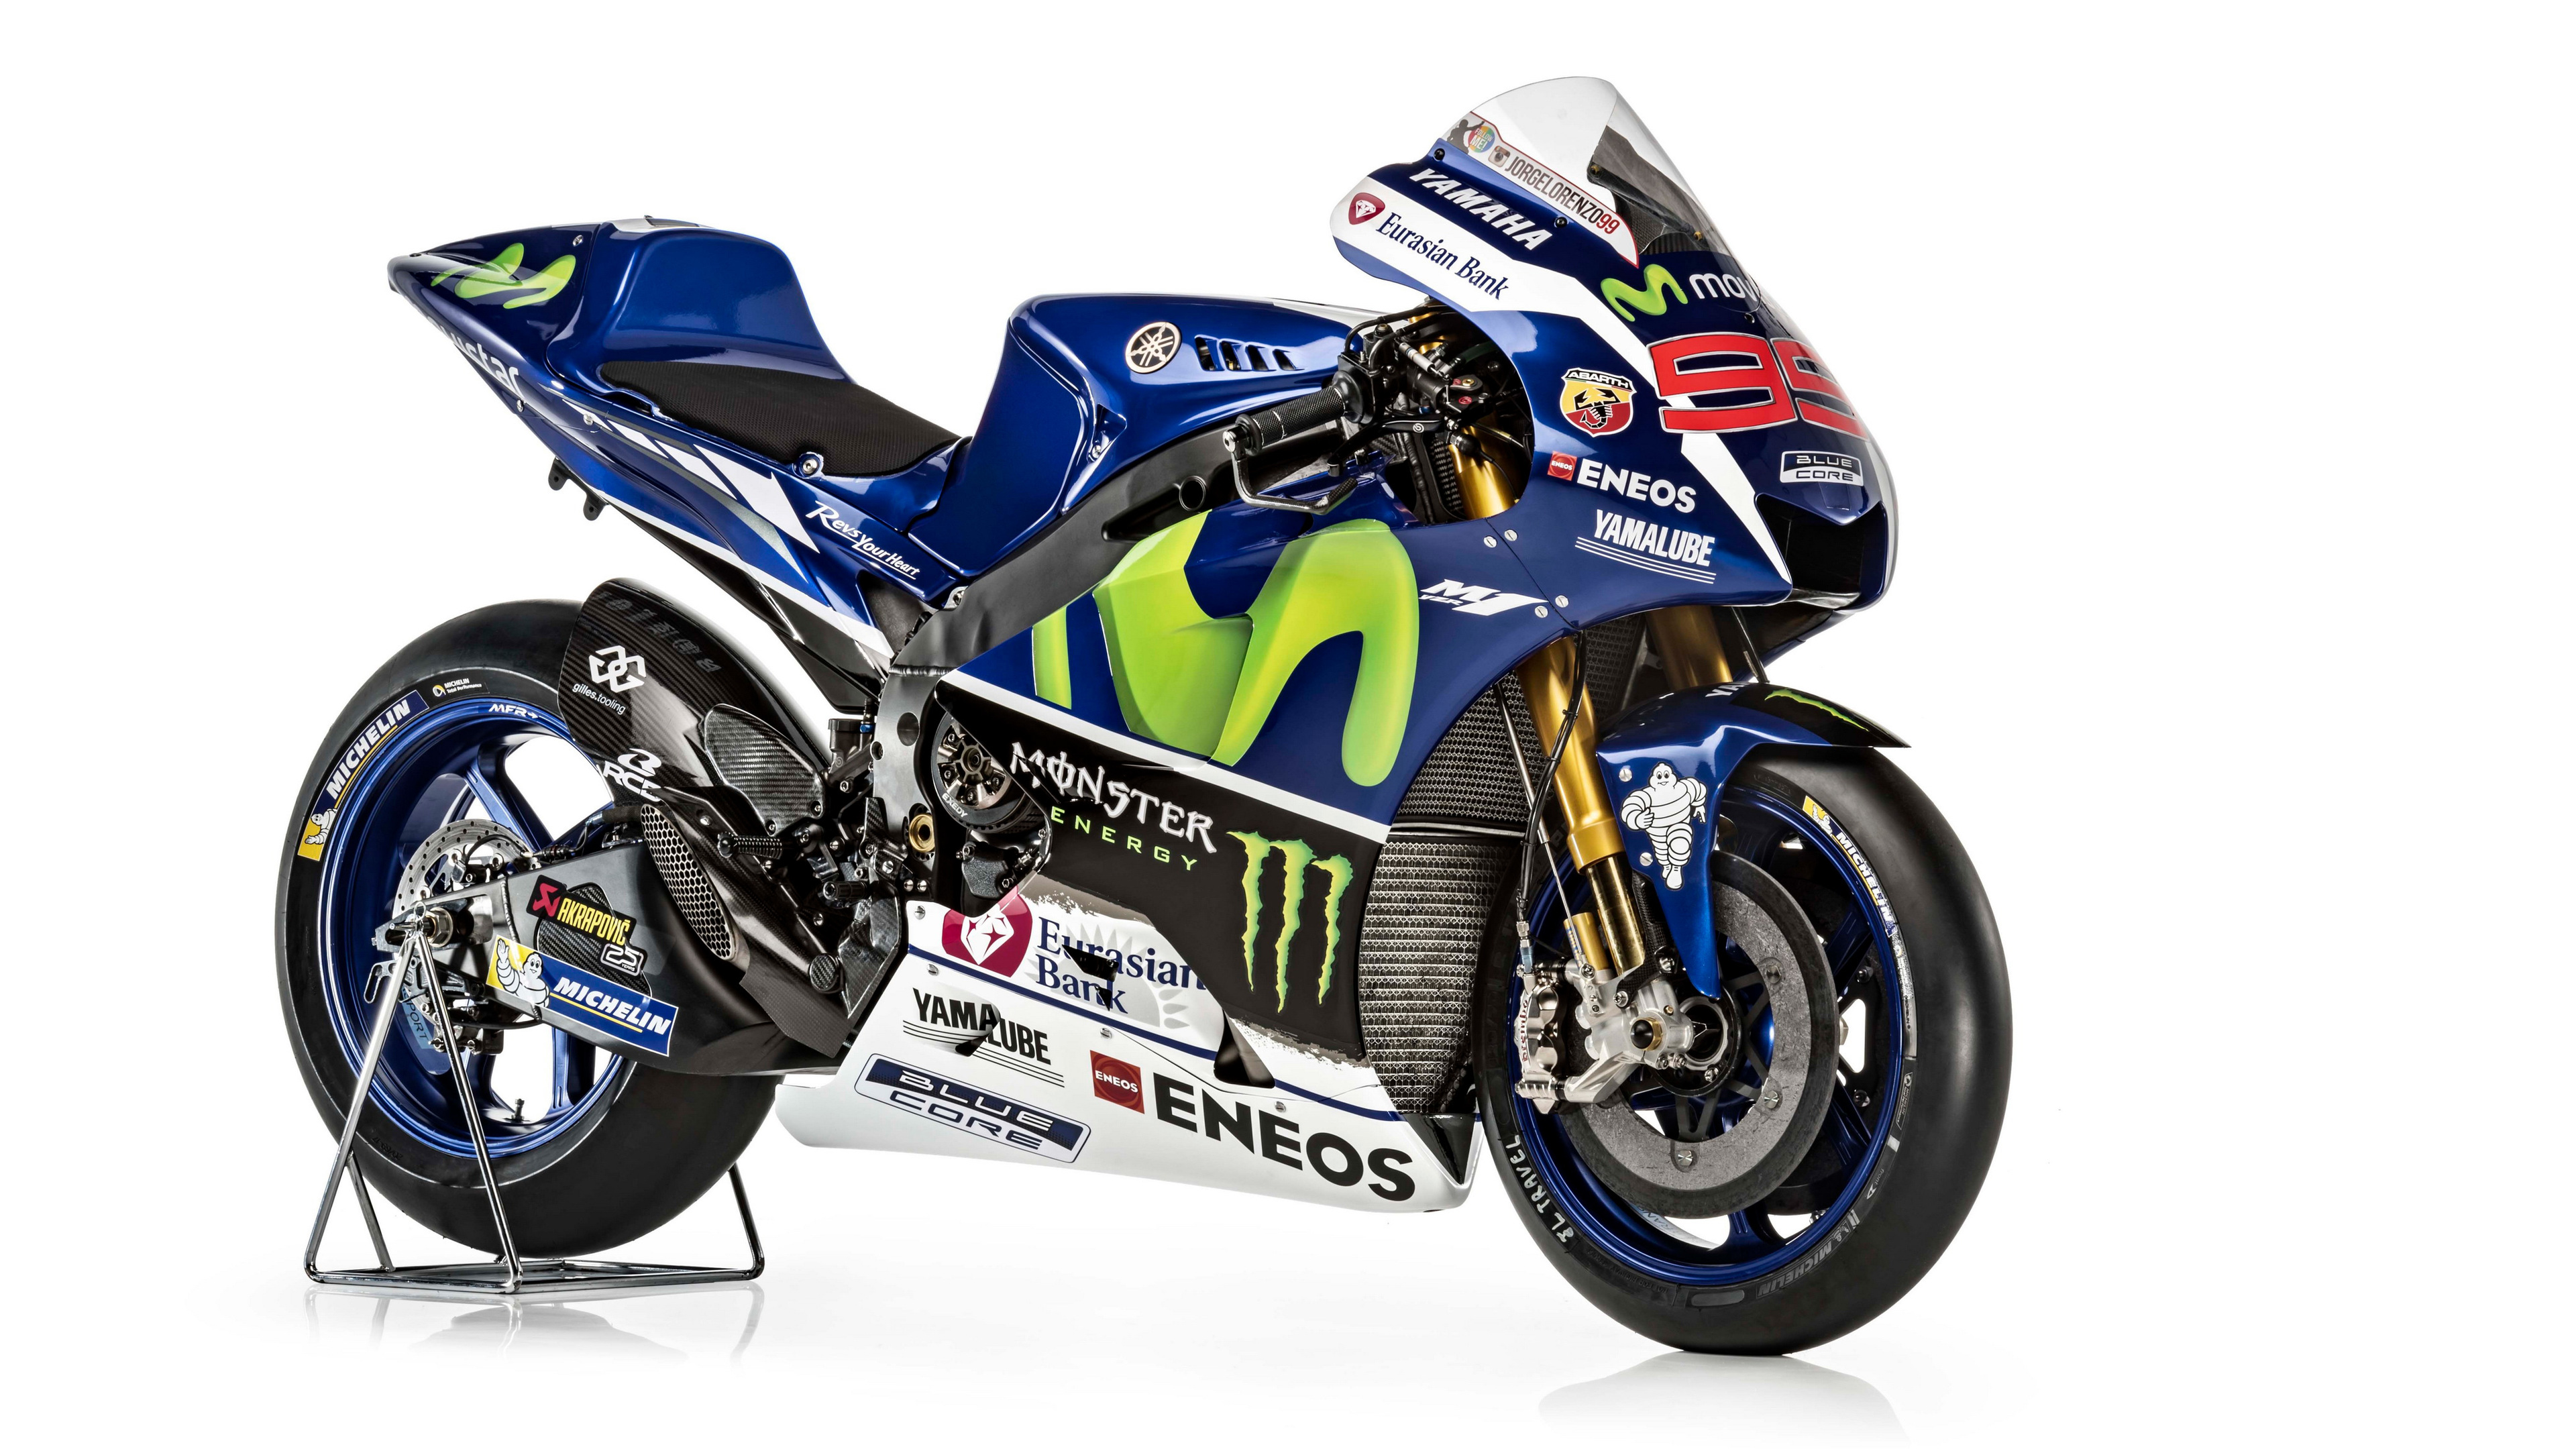 yamaha yzr m1 1536316480 - Yamaha YZR M1 - yamaha yzr m1 wallpapers, yamaha wallpapers, moto gp wallpapers, hd-wallpapers, bikes wallpapers, 4k-wallpapers